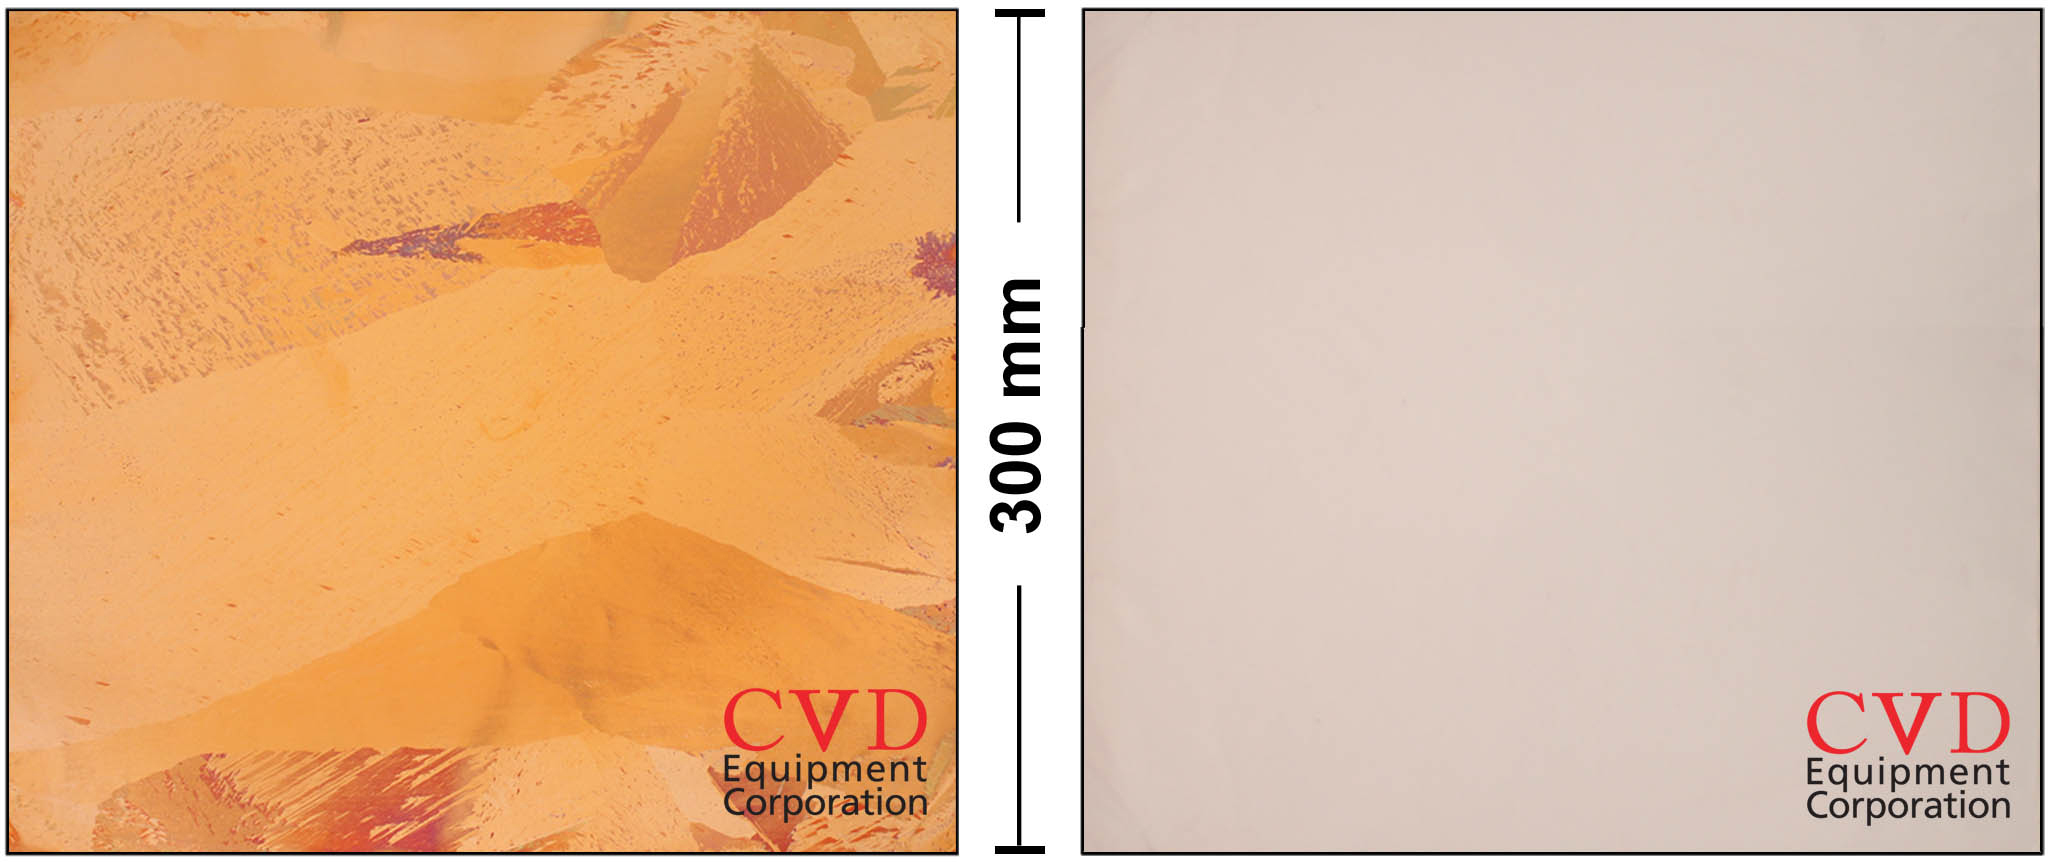 The left image above shows a 300 mm annealed Cu foil (without graphene growth). This foil was intentionally removed from our EasyGraphene™ system at 200º Celsius so that the Cu grains would oxidize at different rates, thereby becoming easily observed with the naked eye. The right image above shows a 300 mm Cu foil with >95% mono layer graphene growth on top of the large Cu grains manufactured in our EasyGraphene™ system. The graphene protects the Cu foil from being oxidized, as can be seen by the uniform pinkish color. (Photo: Business Wire)